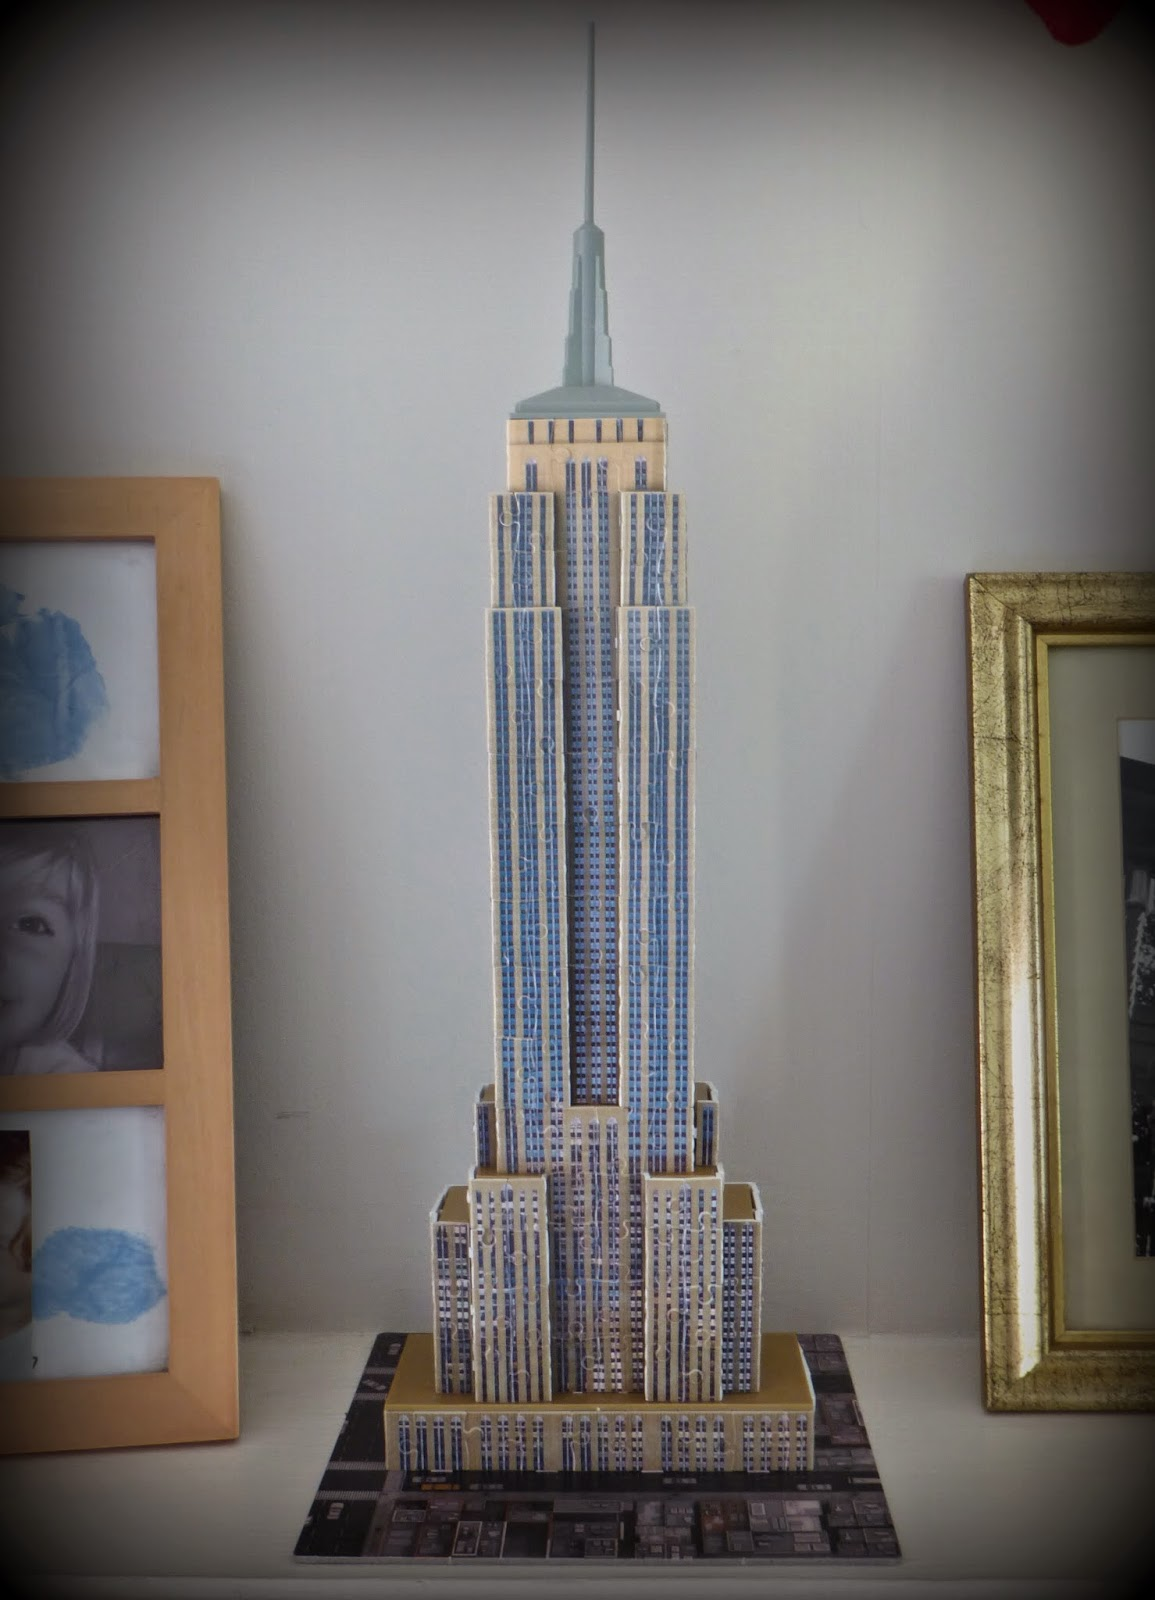 ravensburger 3d puzzle empire state building instructions